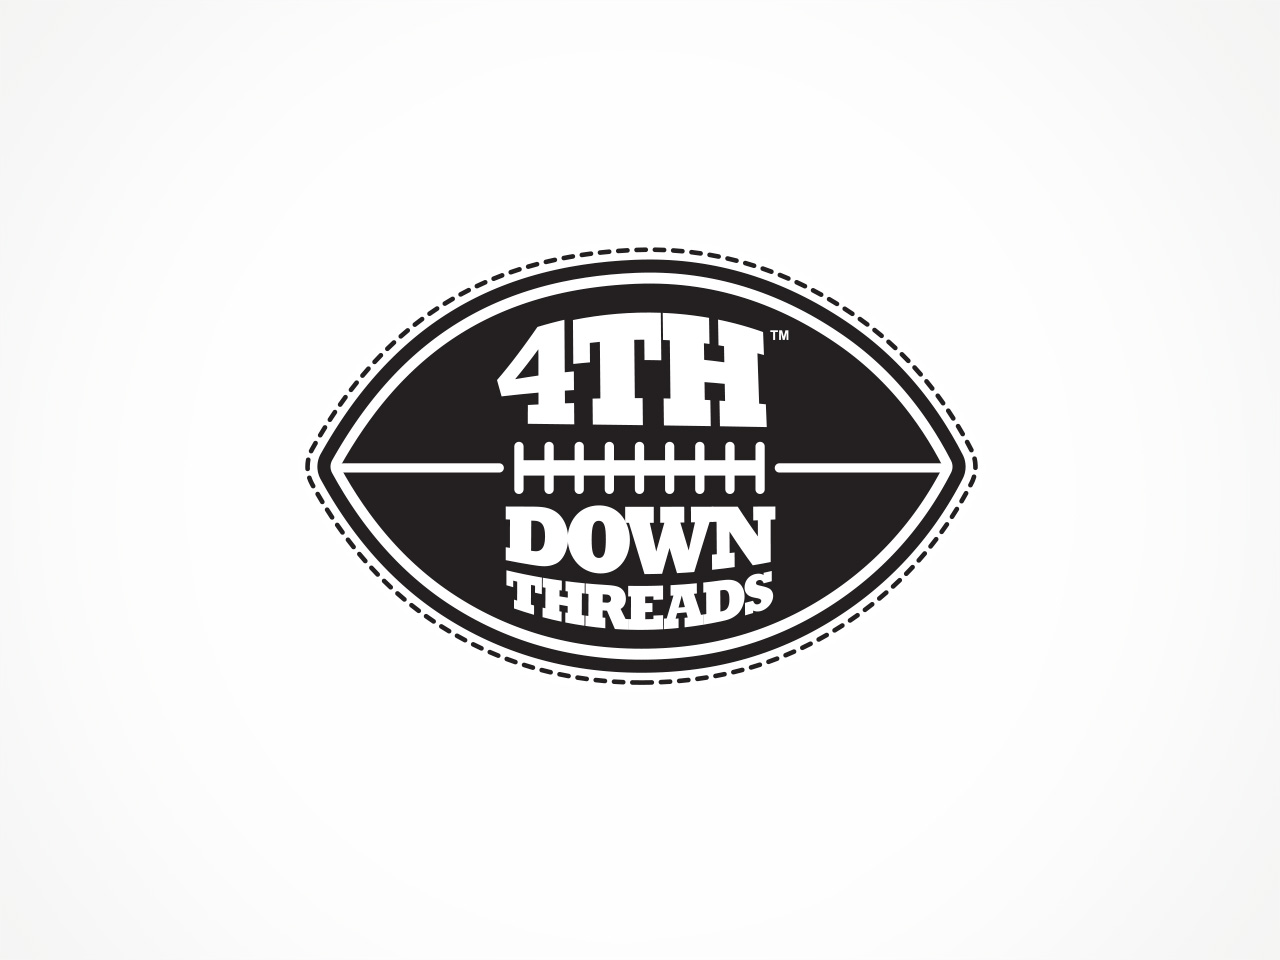 4th Down Threads logo